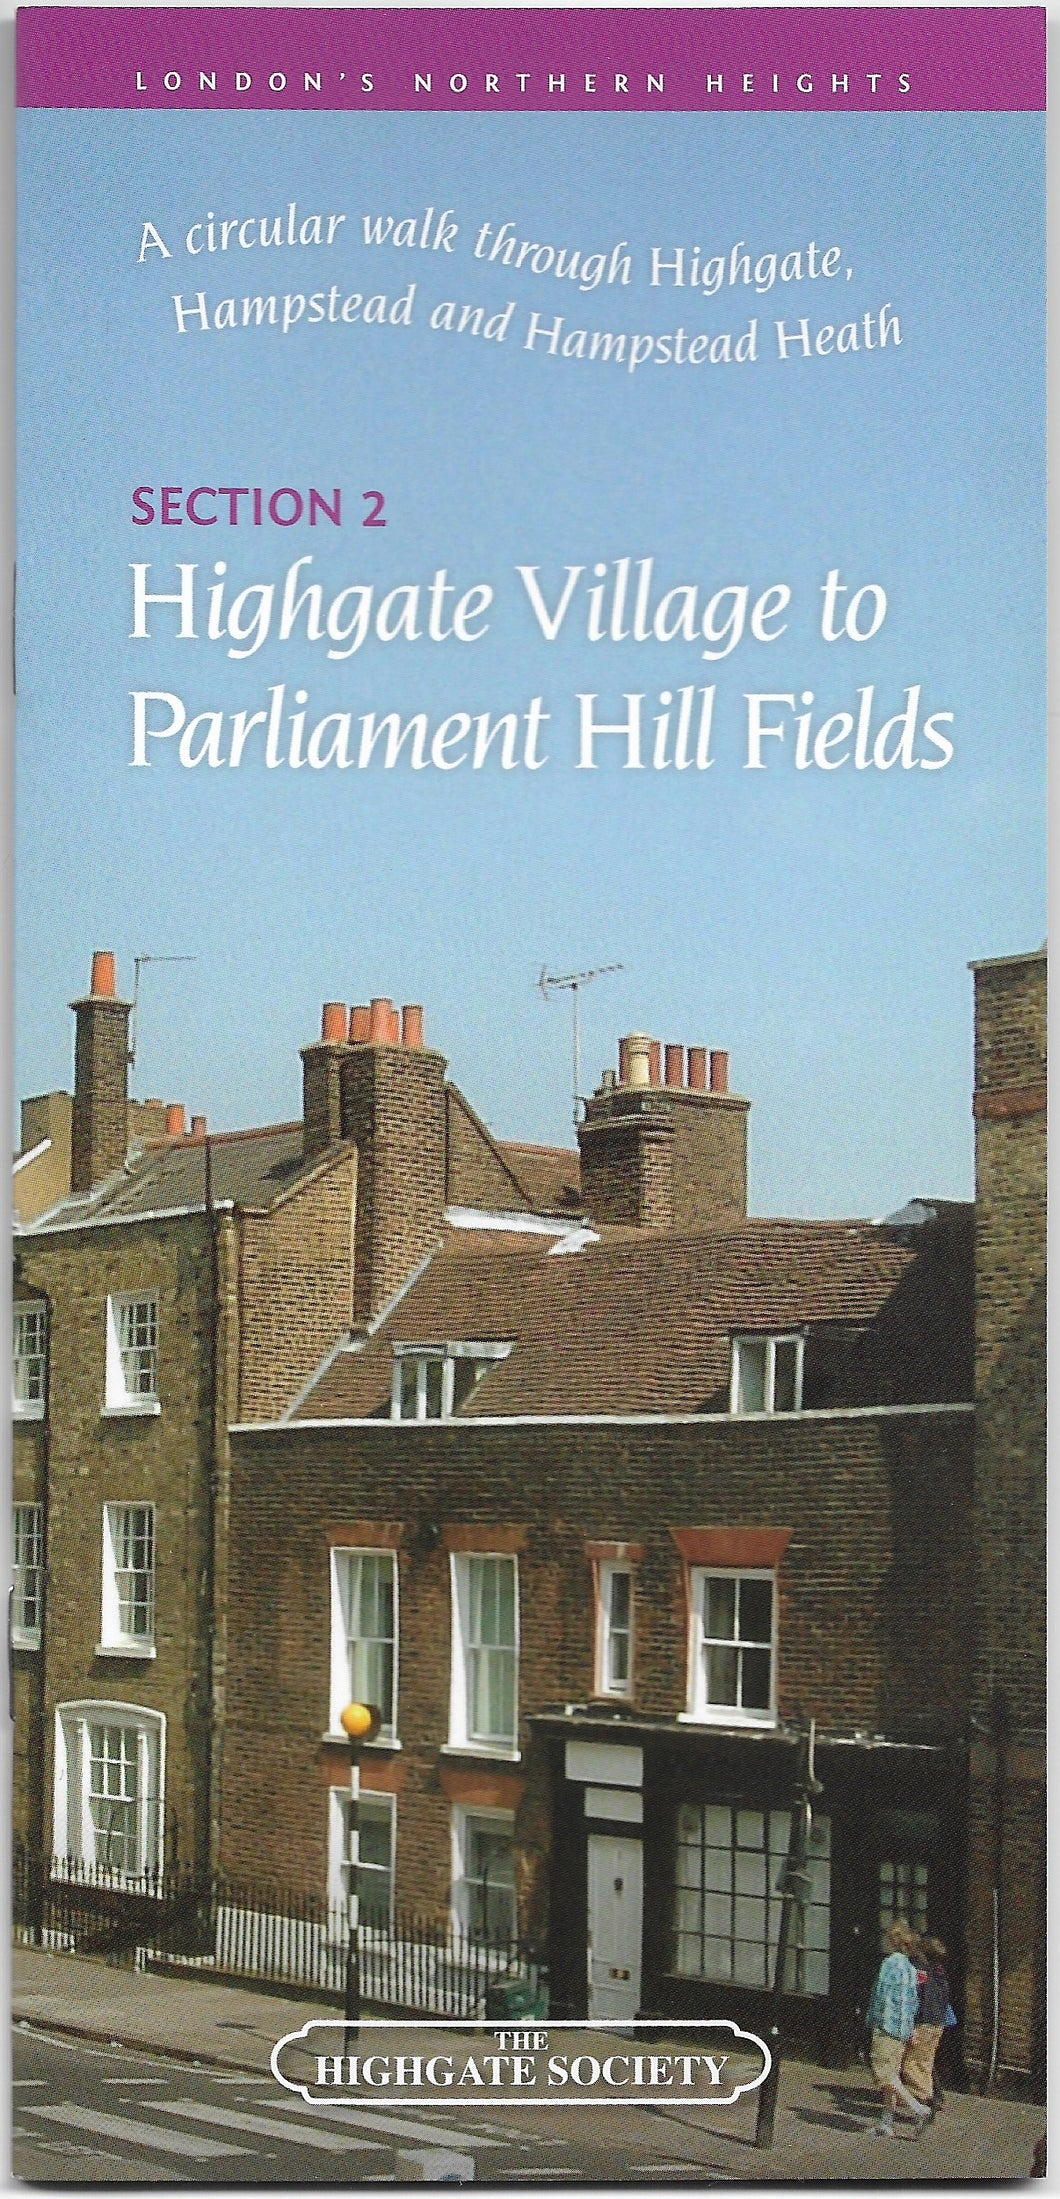 Guide - (2) Highgate Village to Parliament Hill Fields